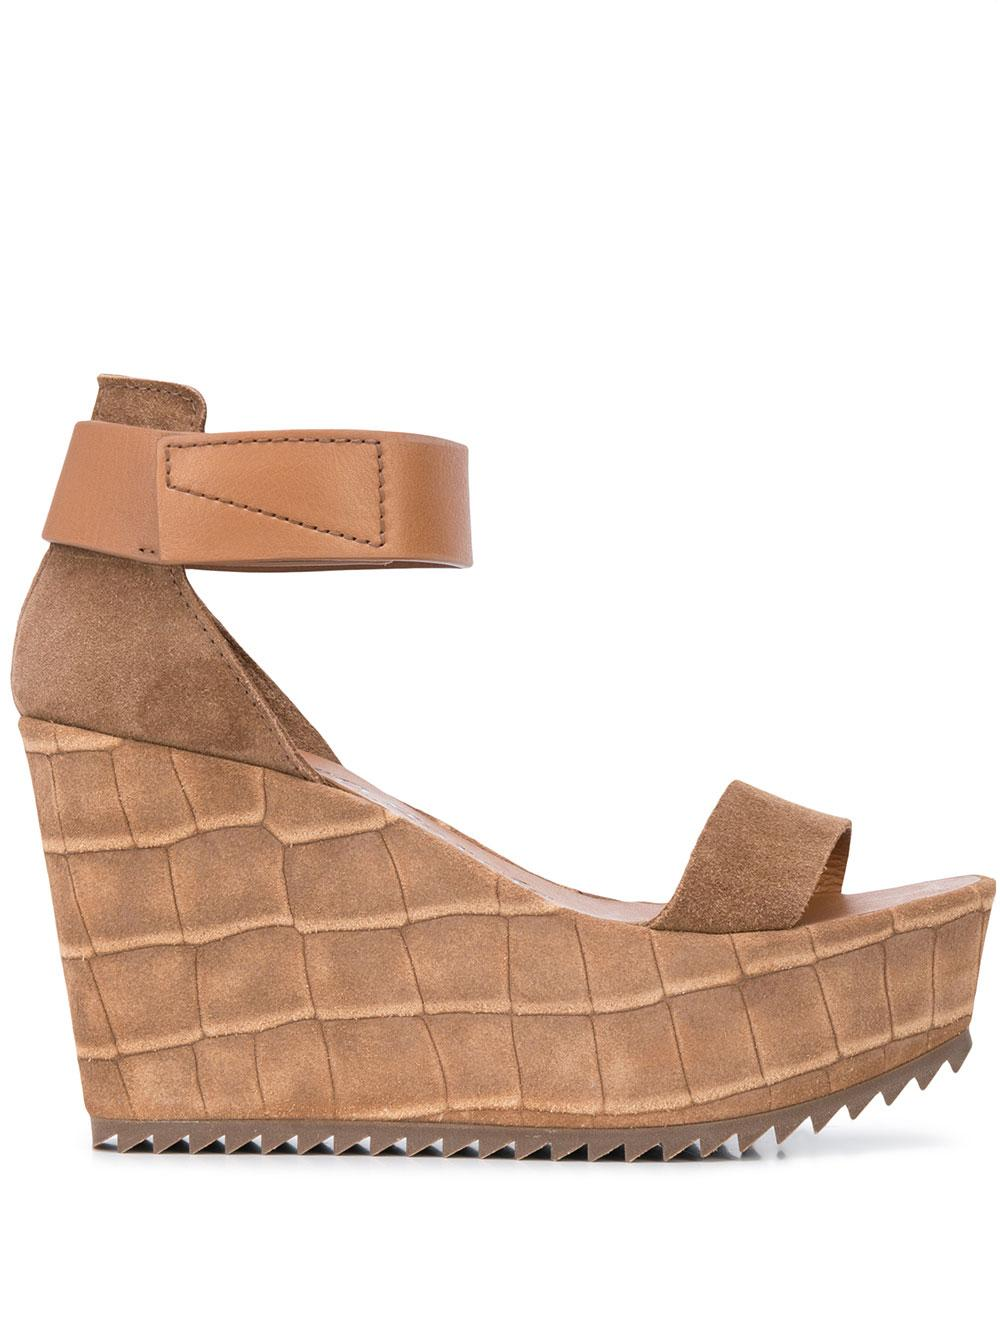 Croc Emb Platform Wedge Sandal With Ankle